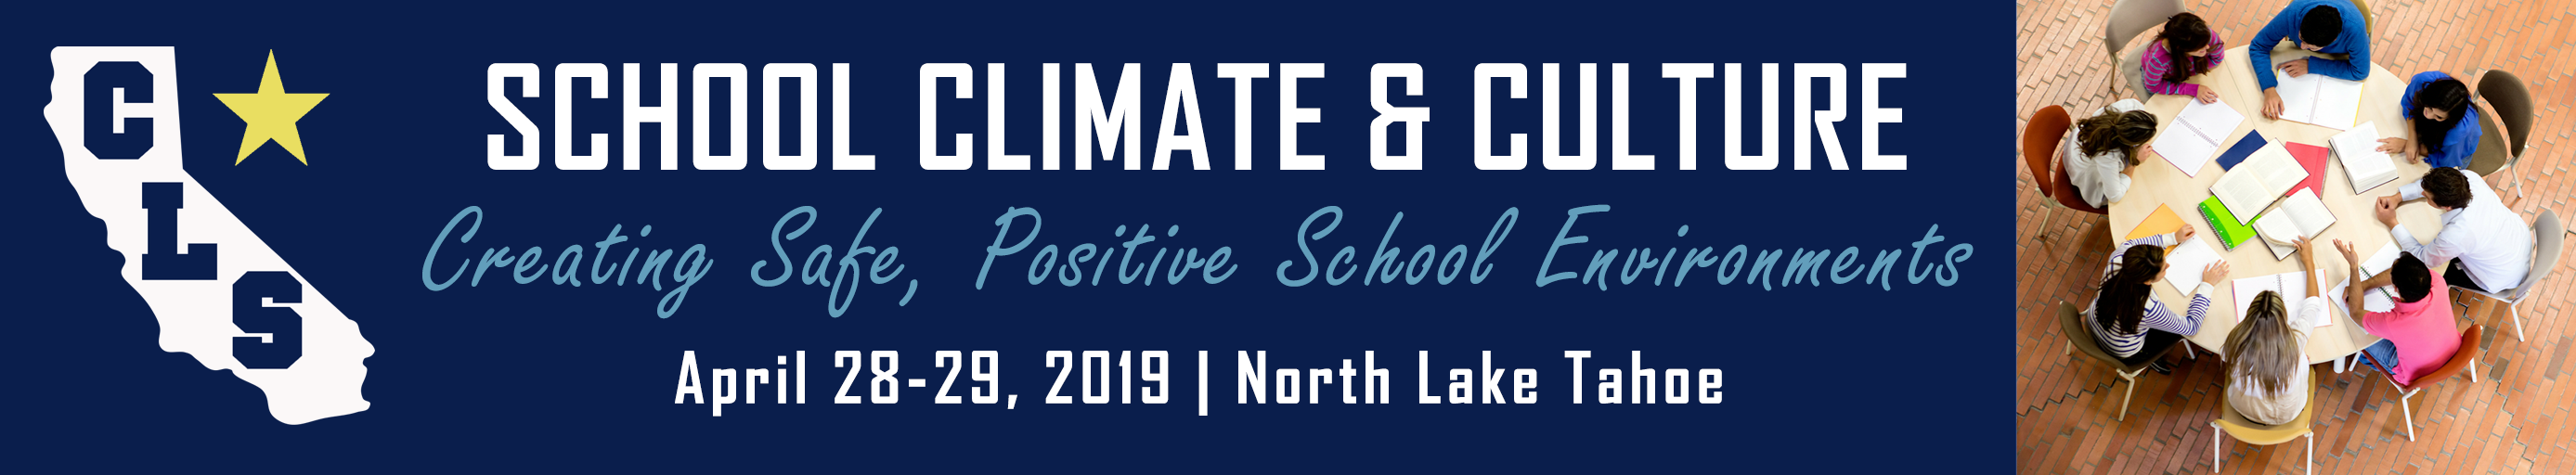 2019 School Climate & Culture Conference